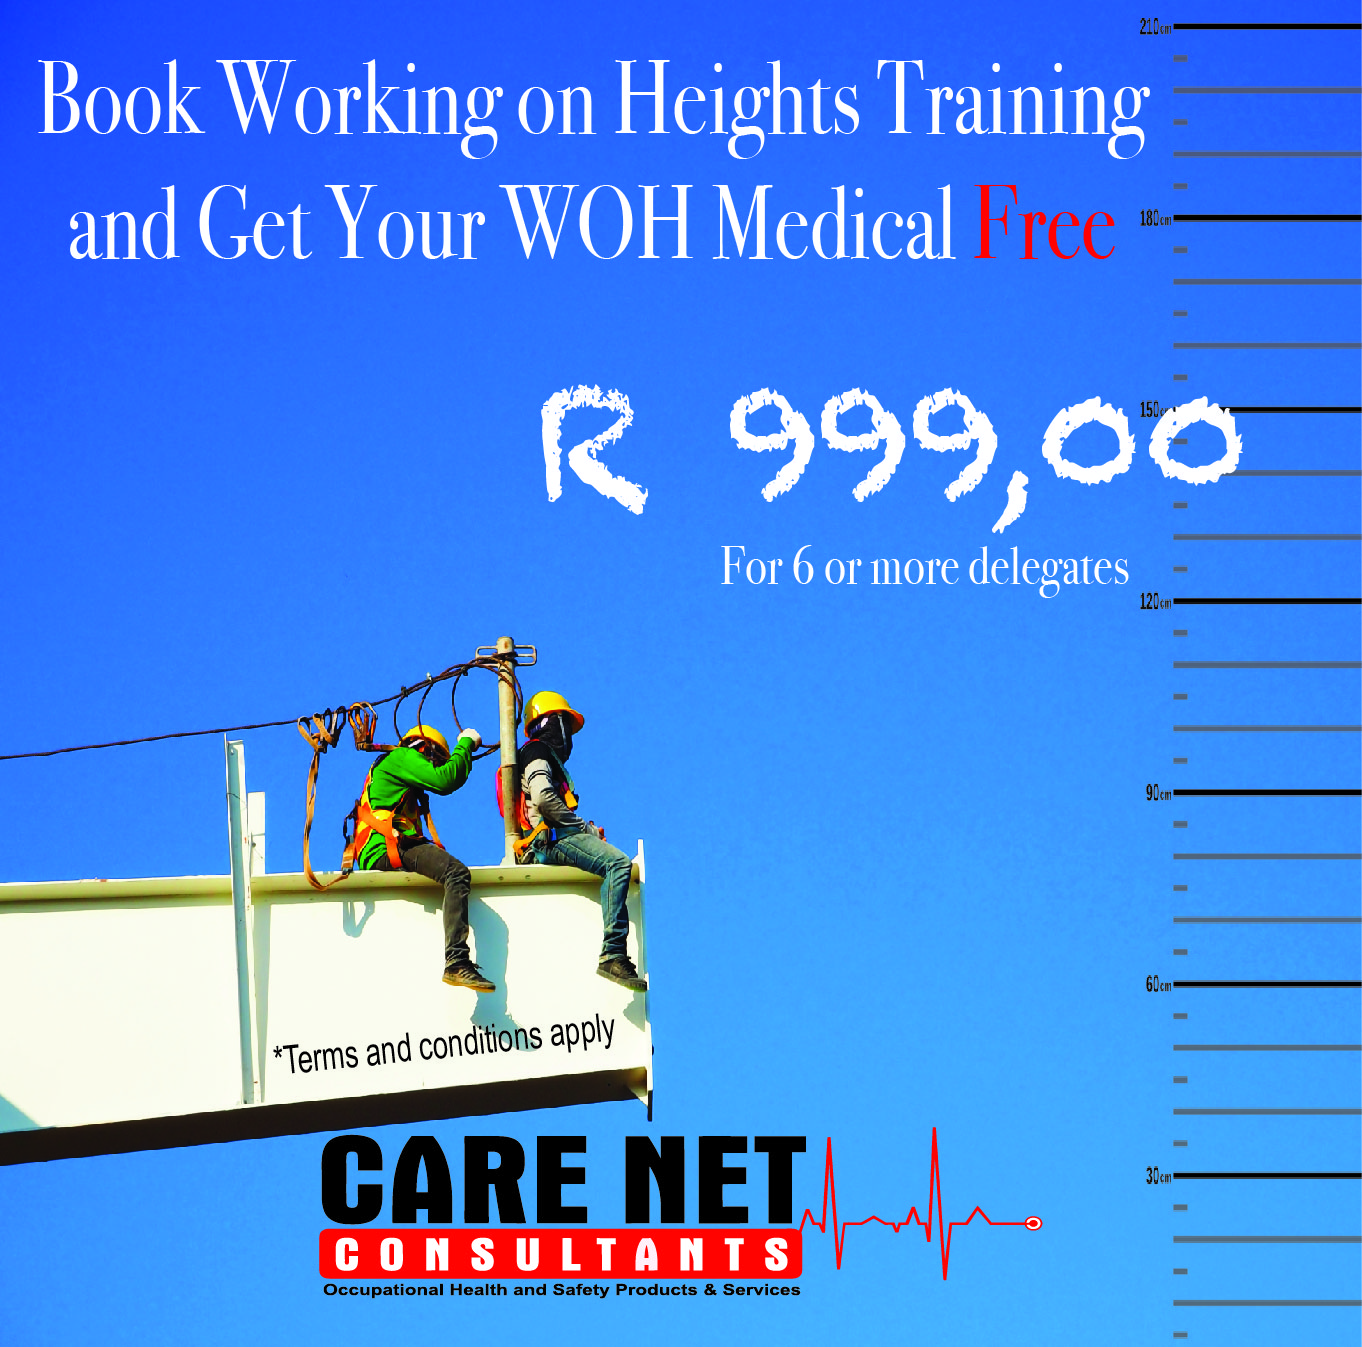 WOH Training and Medical